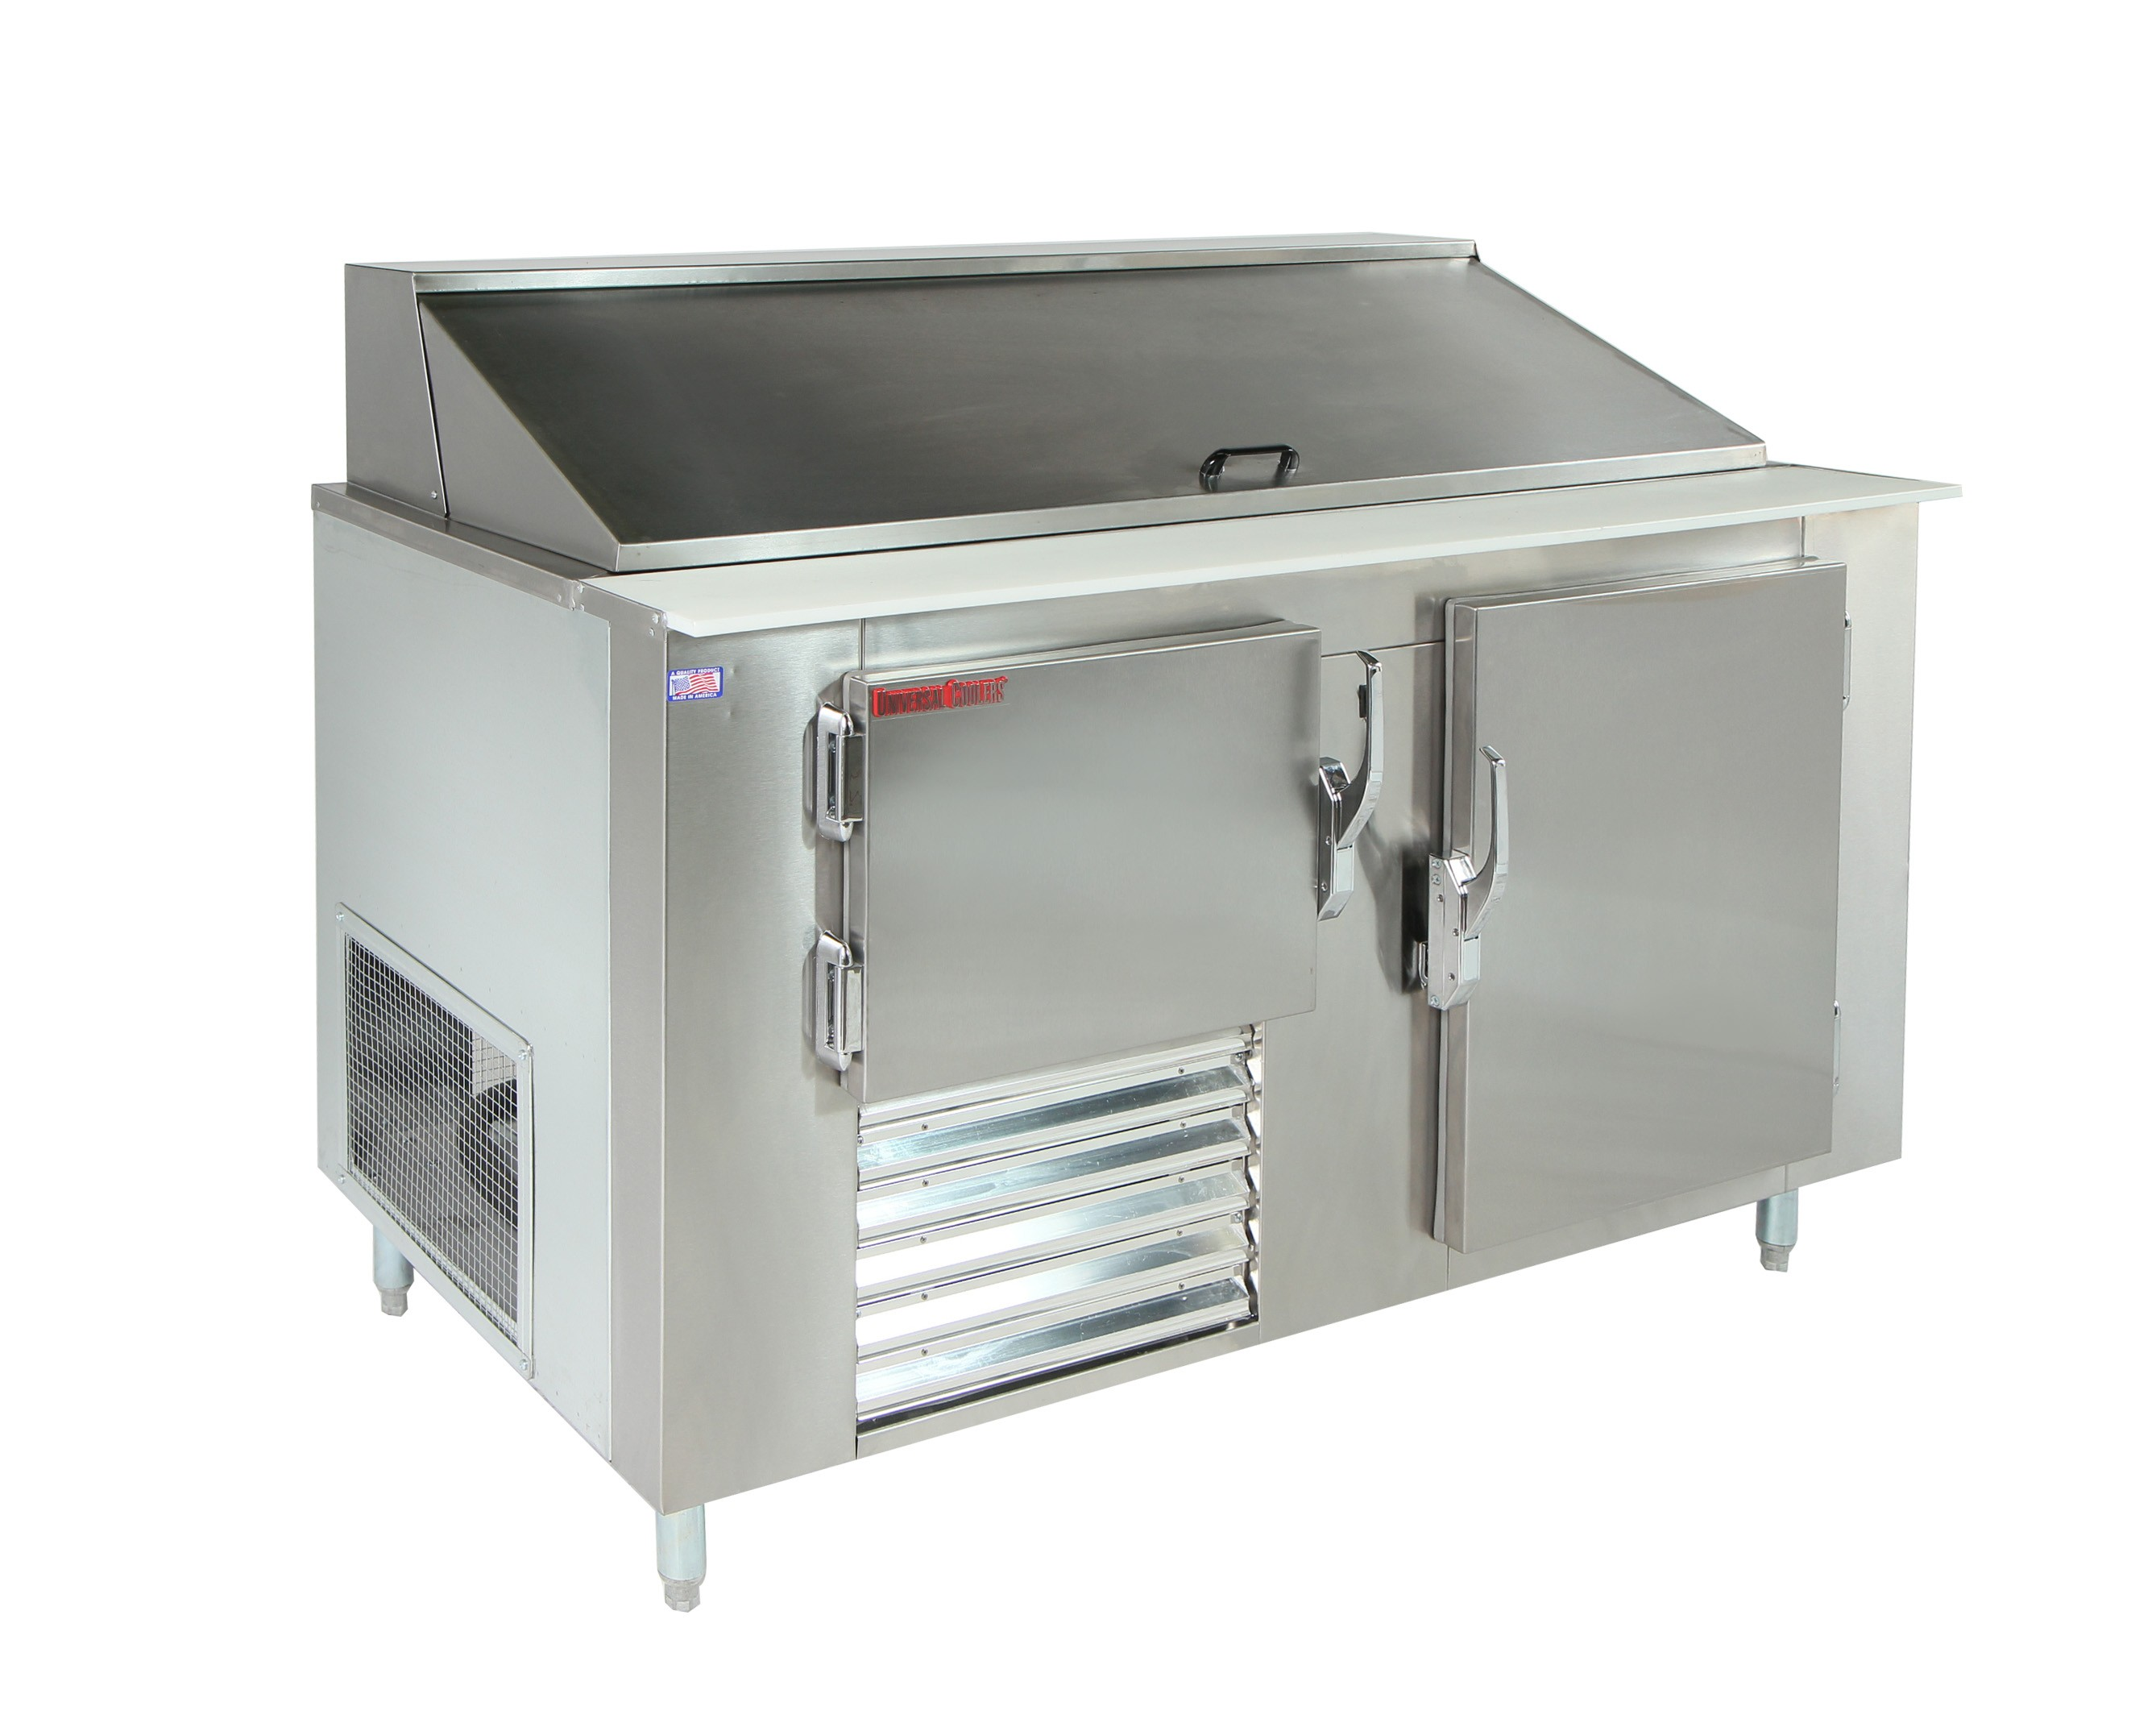 Sandwich Salad Prep Tables c kitchen prep tables Universal Coolers SC 36 BM Refrigerated Sandwich Prep Table 36